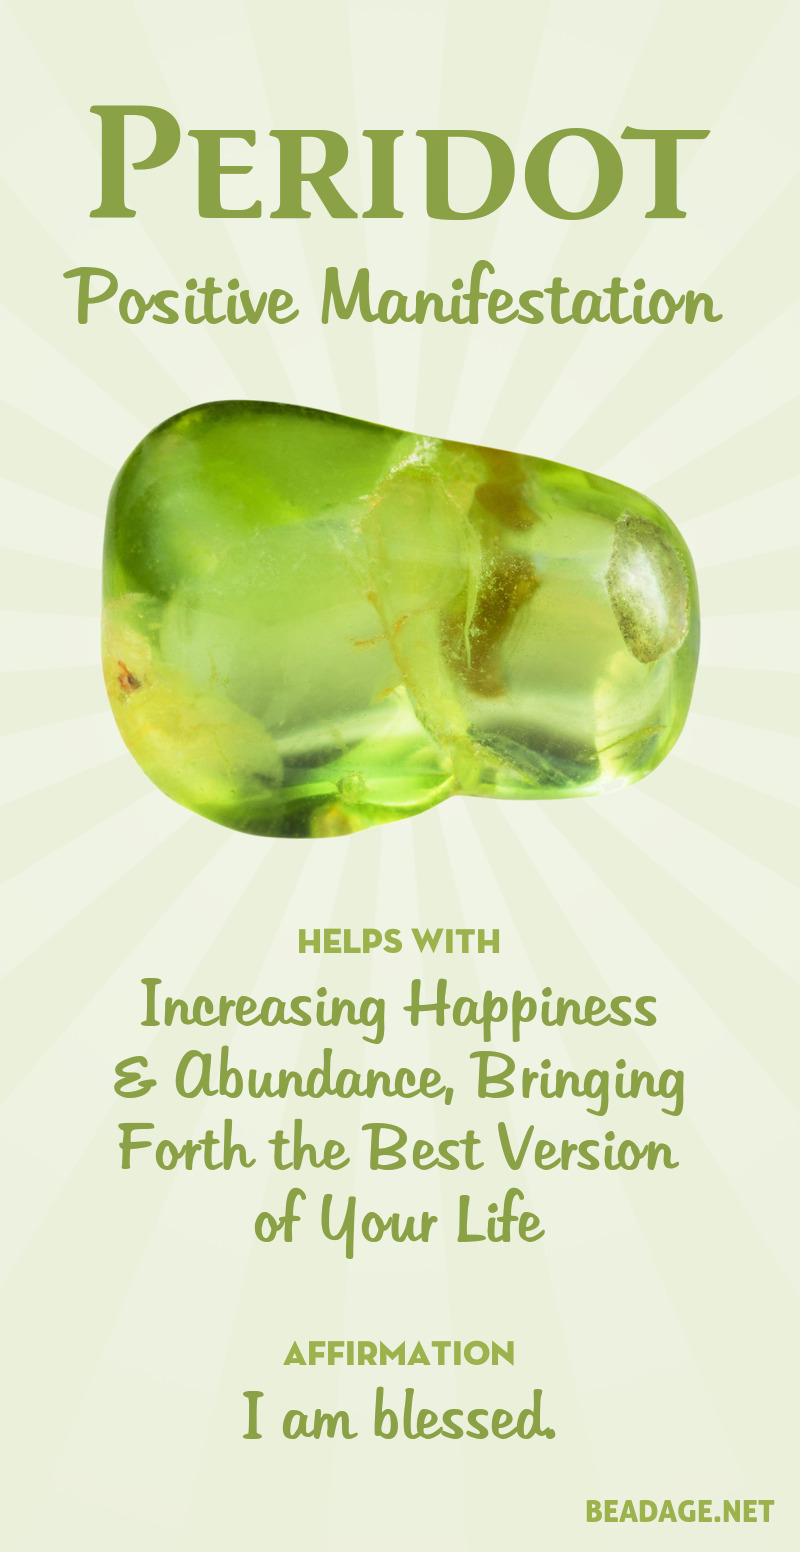 Peridot is a positive energy stone. It vibrates with the energy of sunshine, showering you with blessings and abundance. It helps bring the physical reality of your life into alignment with your true purpose and joy. It can help you release past hardships, and step into a new reality of fruitful goodness. Learn more about Peridot meaning + healing properties, benefits & more. Visit to find gemstone meanings & info about crystal healing. #gemstones #crystals #crystalhealing #beadage